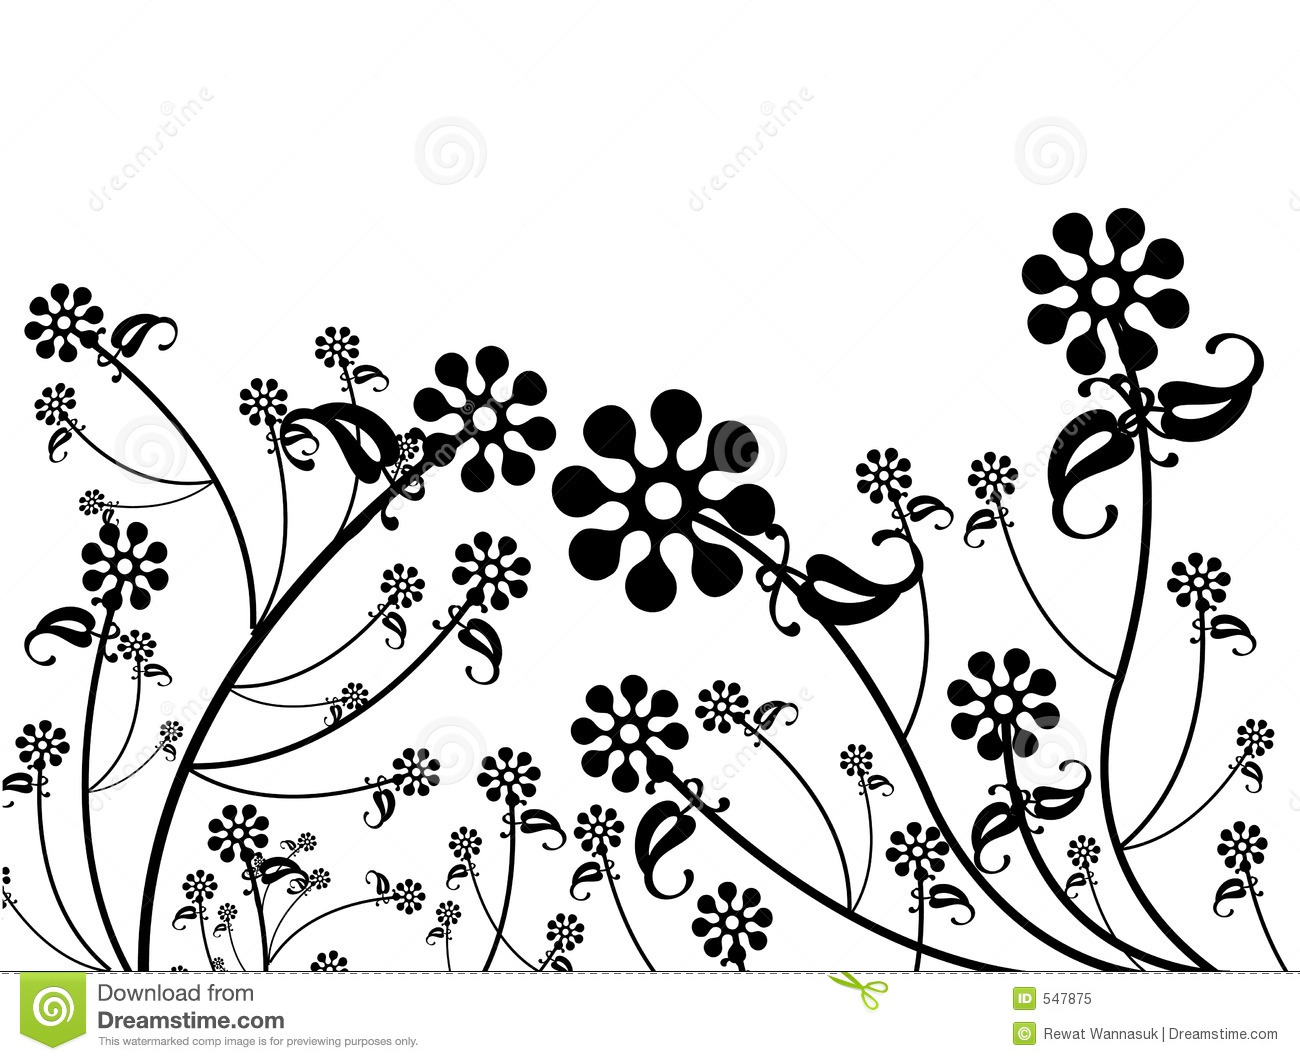 Pattern design of flower stock illustration illustration of back pattern design of flower thecheapjerseys Choice Image